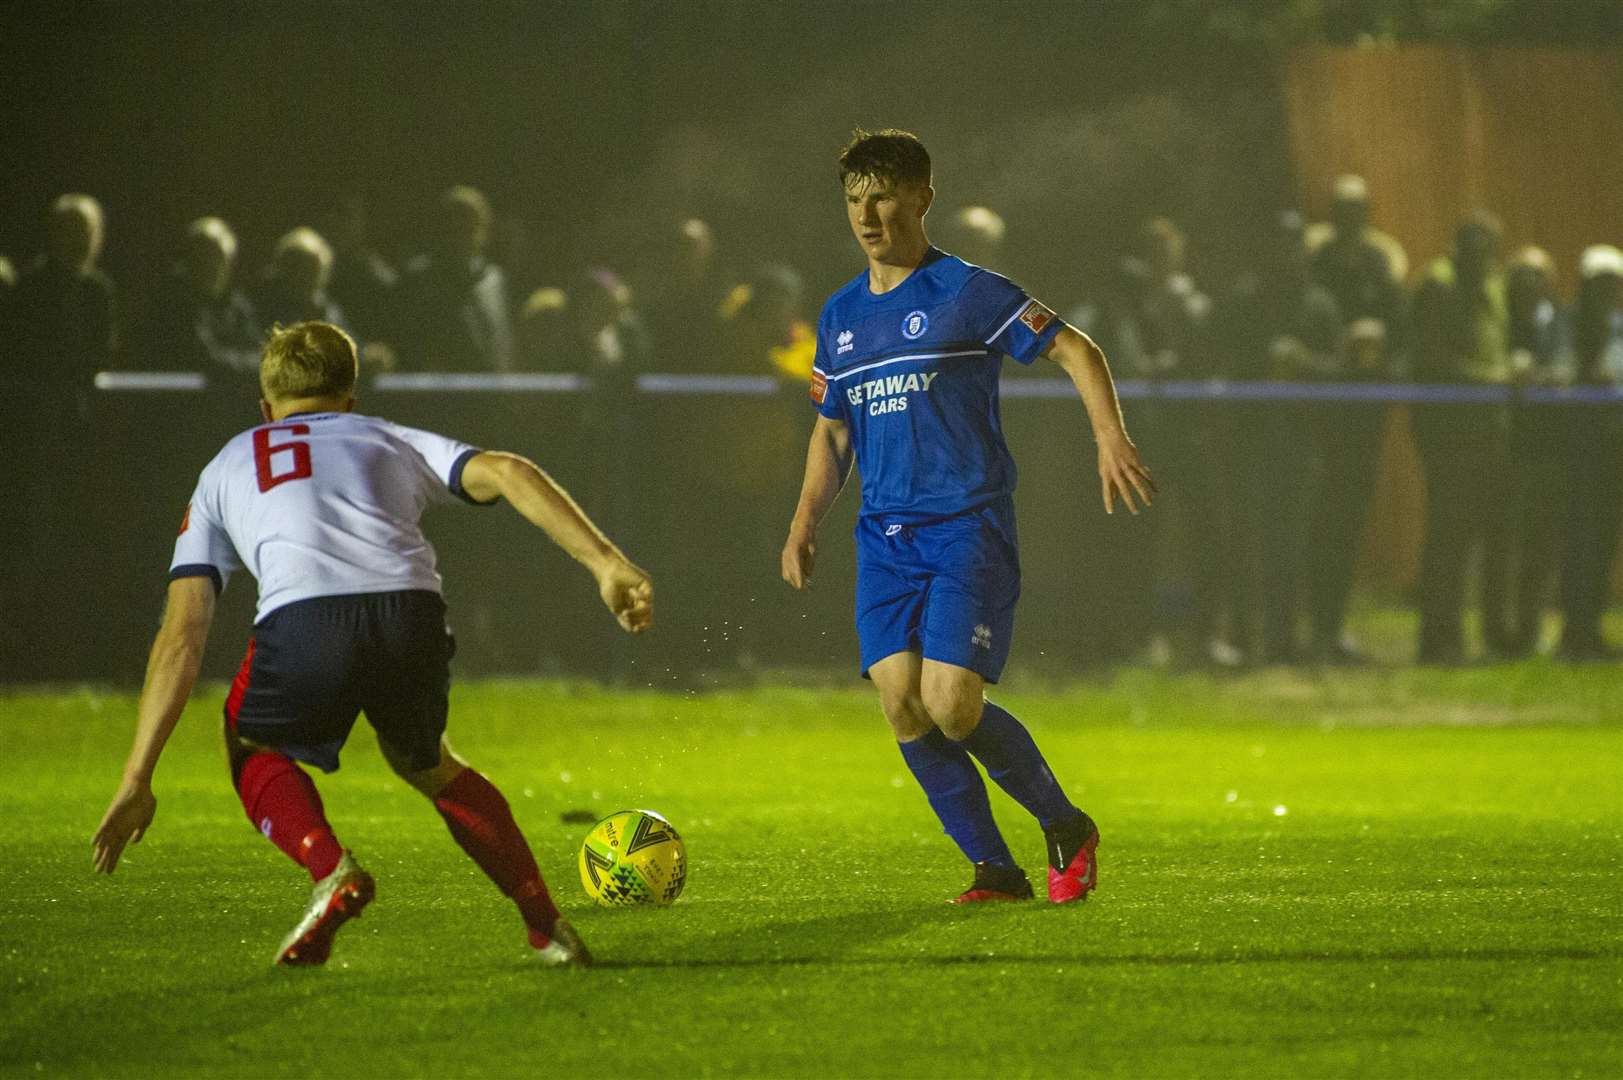 Ipswich Town teenager Connor O'Reilly on his Bury Town debut, against Witham Town. Picture: Neil Dady